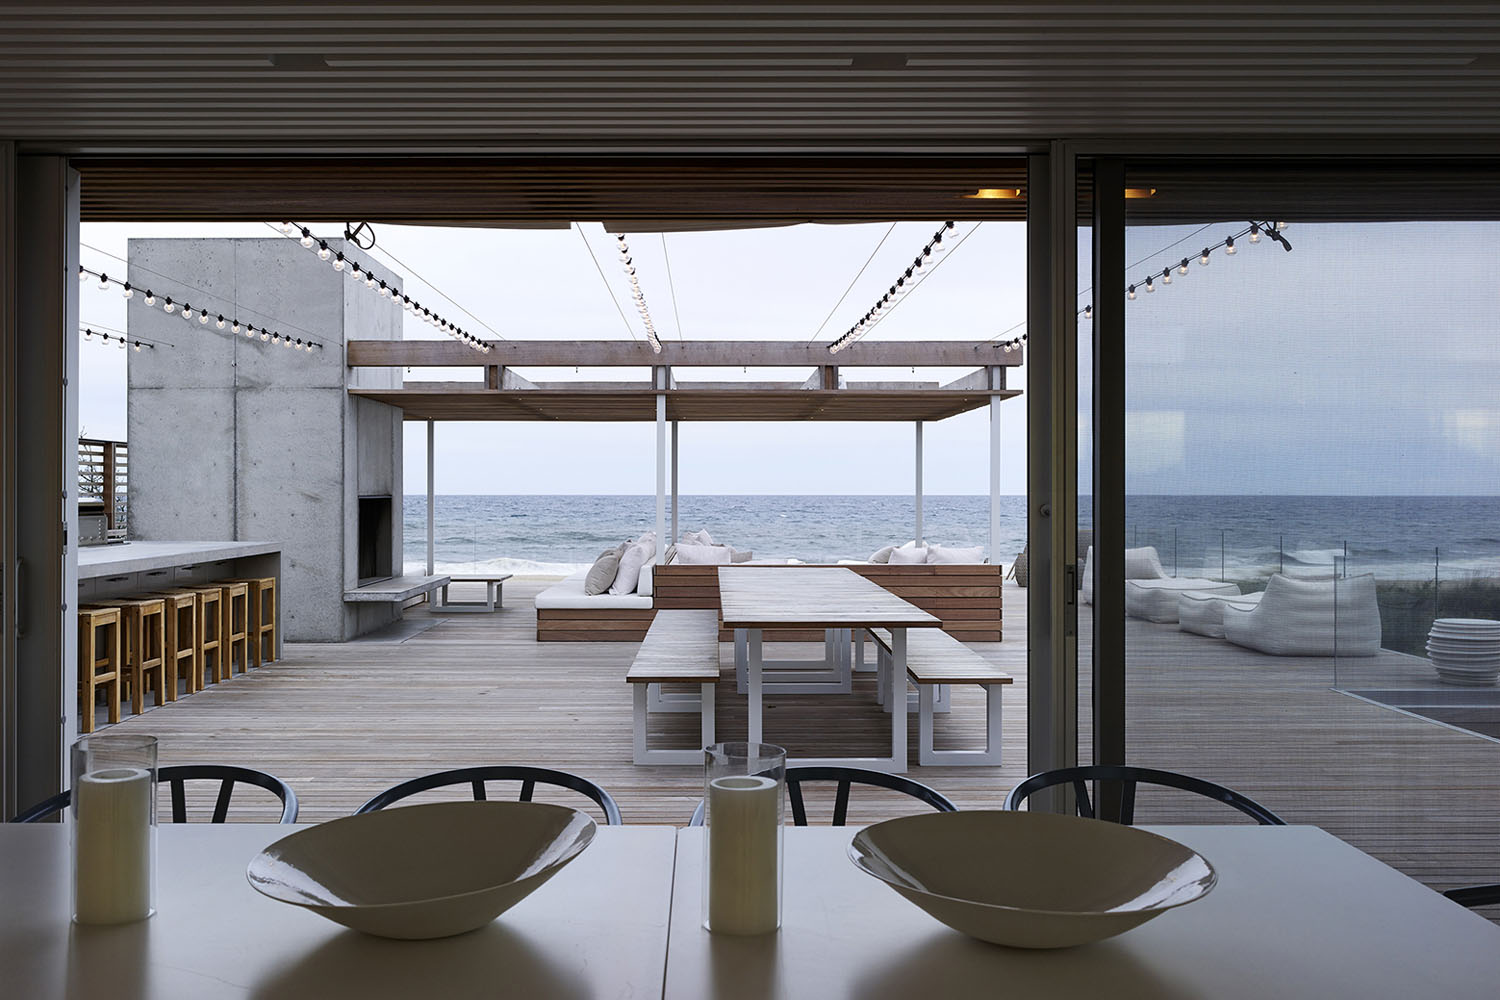 mm_Ocean Deck House design by Stelle Lomont Rouhani Architects_14